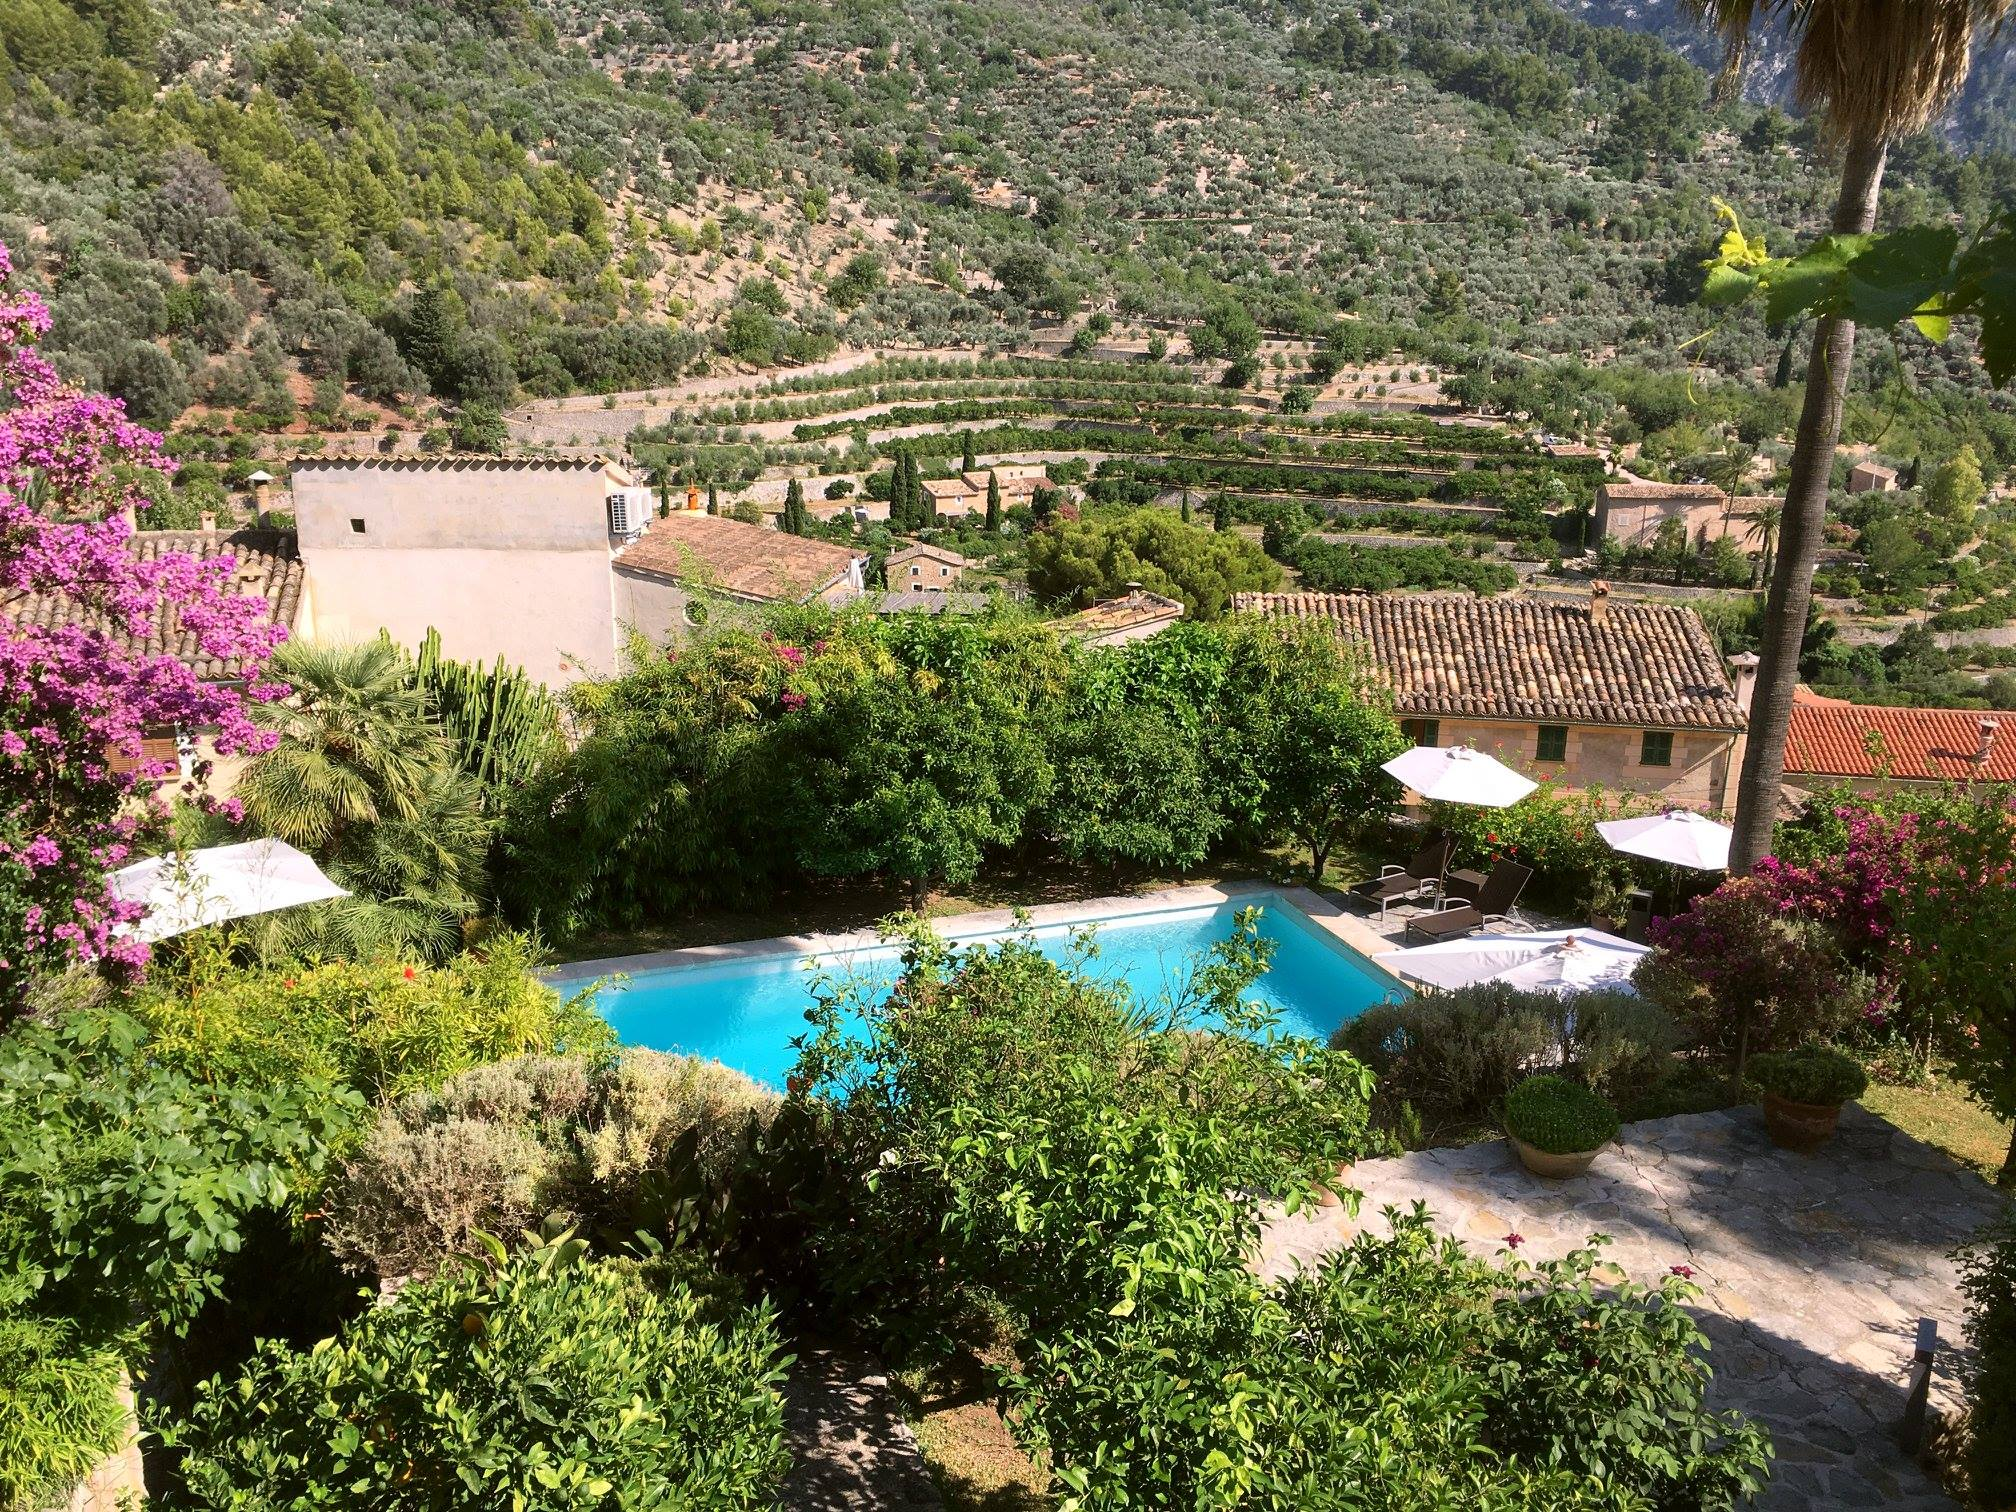 Can Verdera - View from the terrace  - Fornalutx - Tramuntana